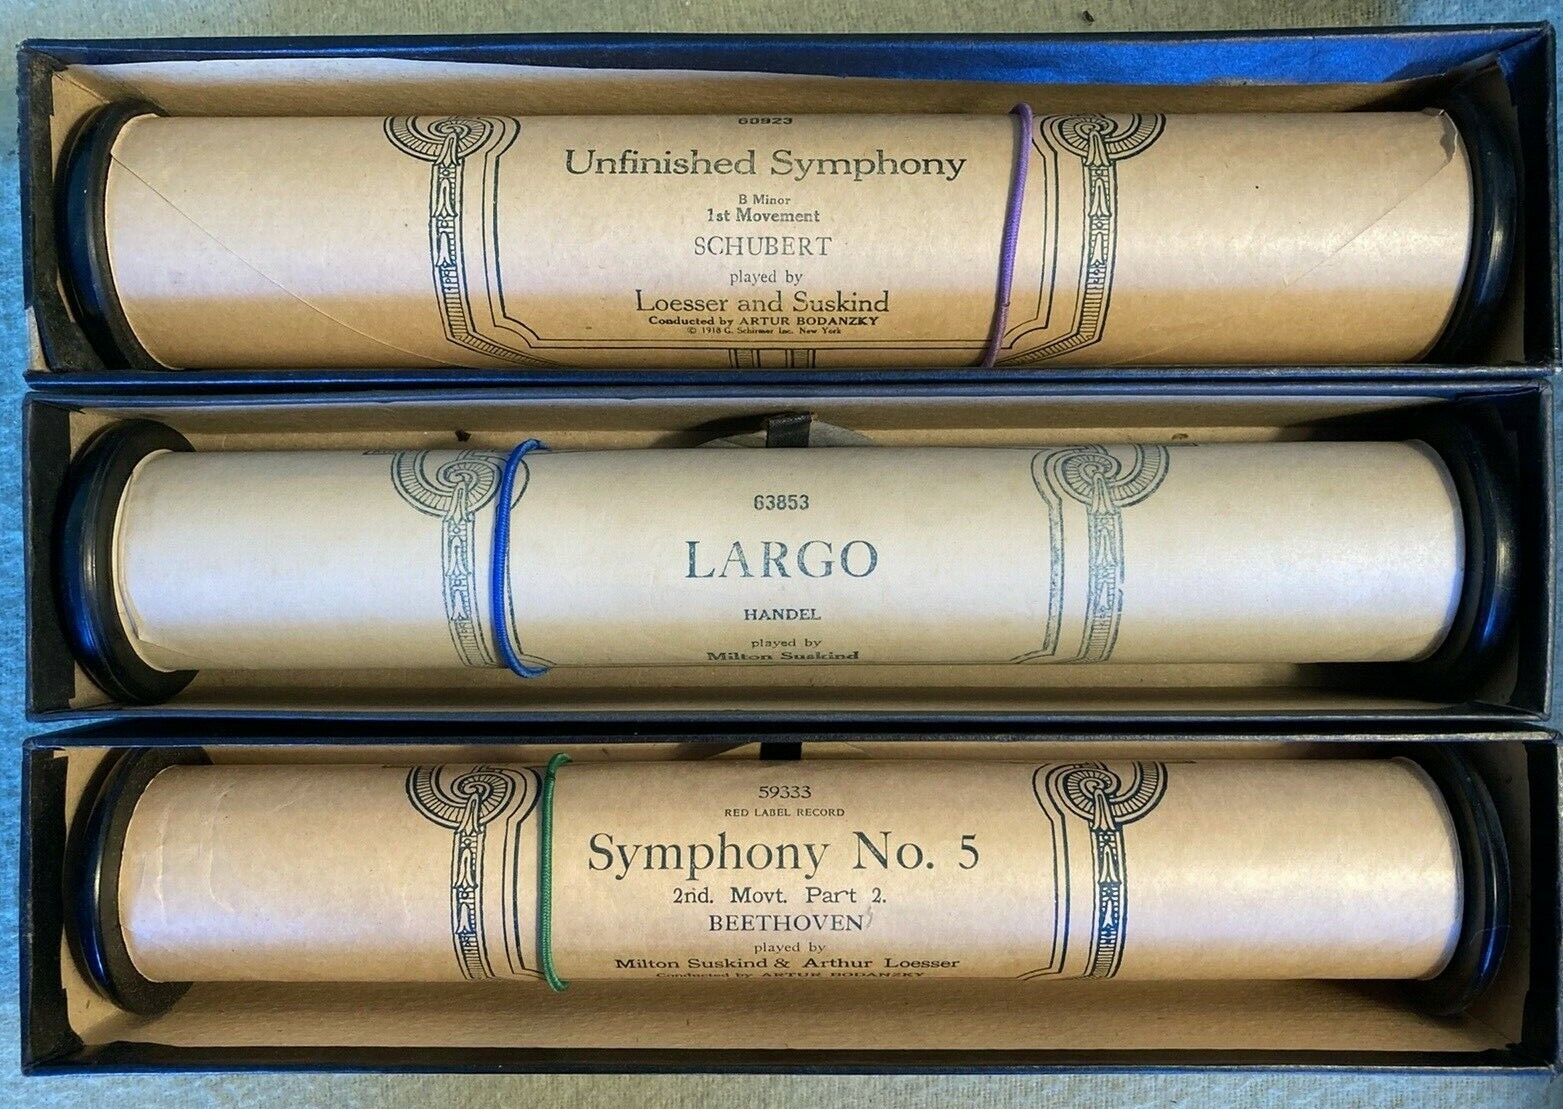 Vintage Ampico Player Piano Rolls, Previously Played - Bundle Of 3 Rolls - $13.00